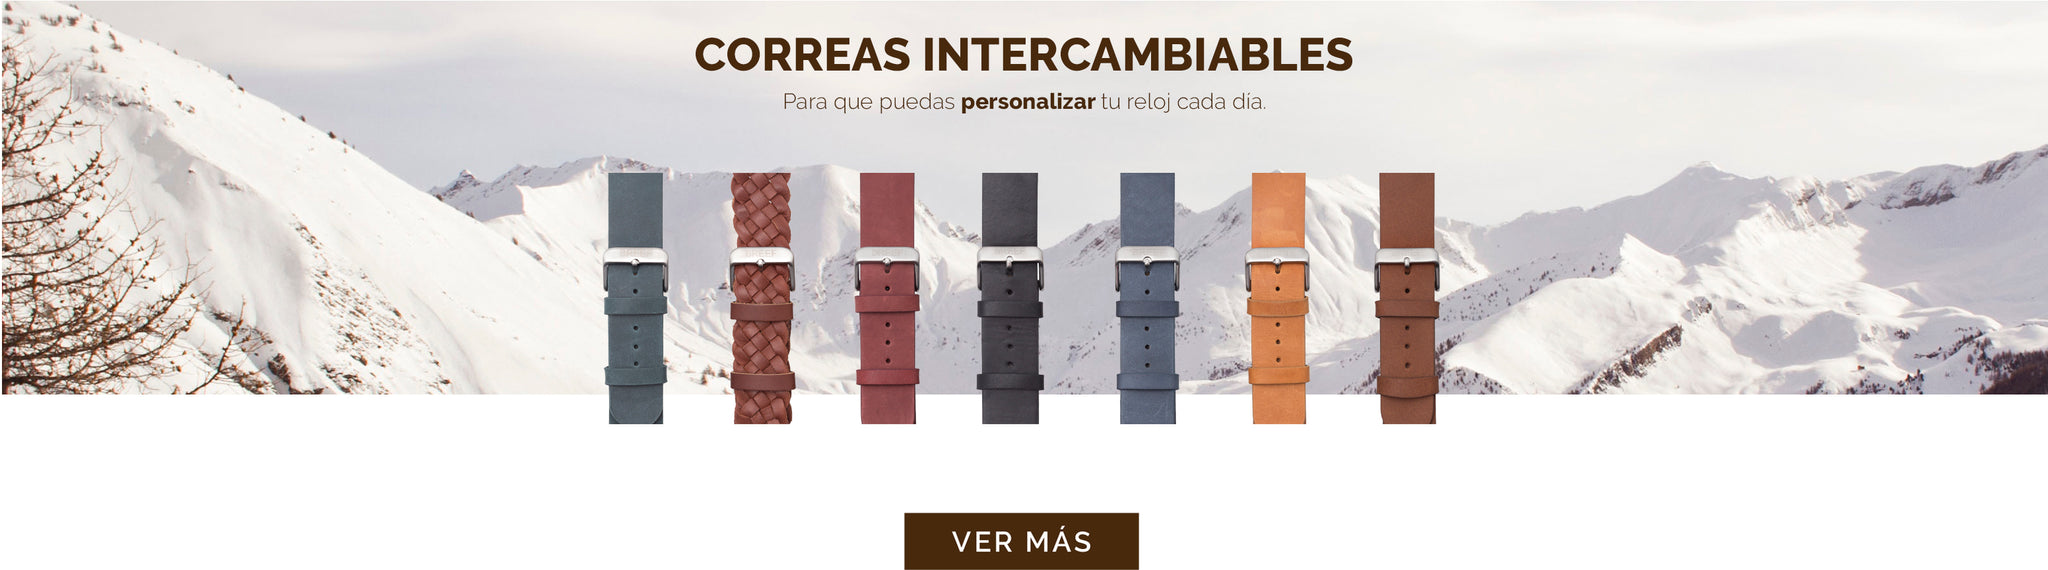 correas-intercambiables